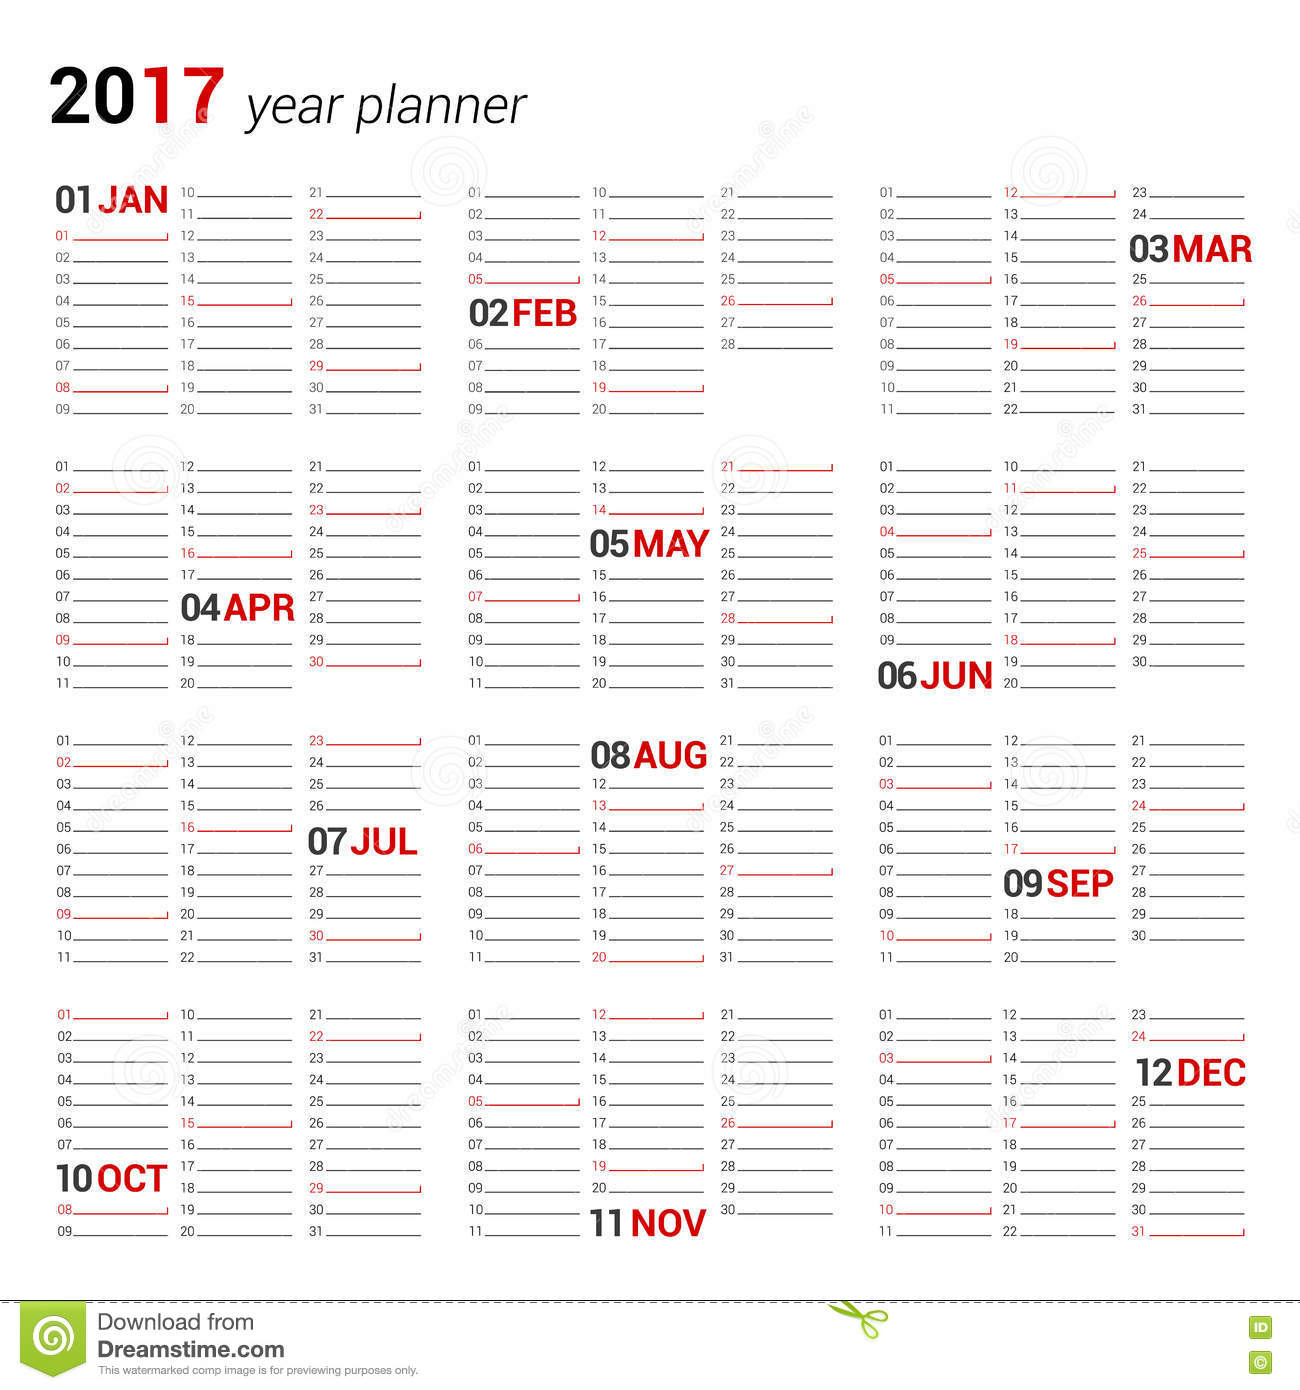 Yearly wall calendar planner template for 2017 year for Dreams by design planner